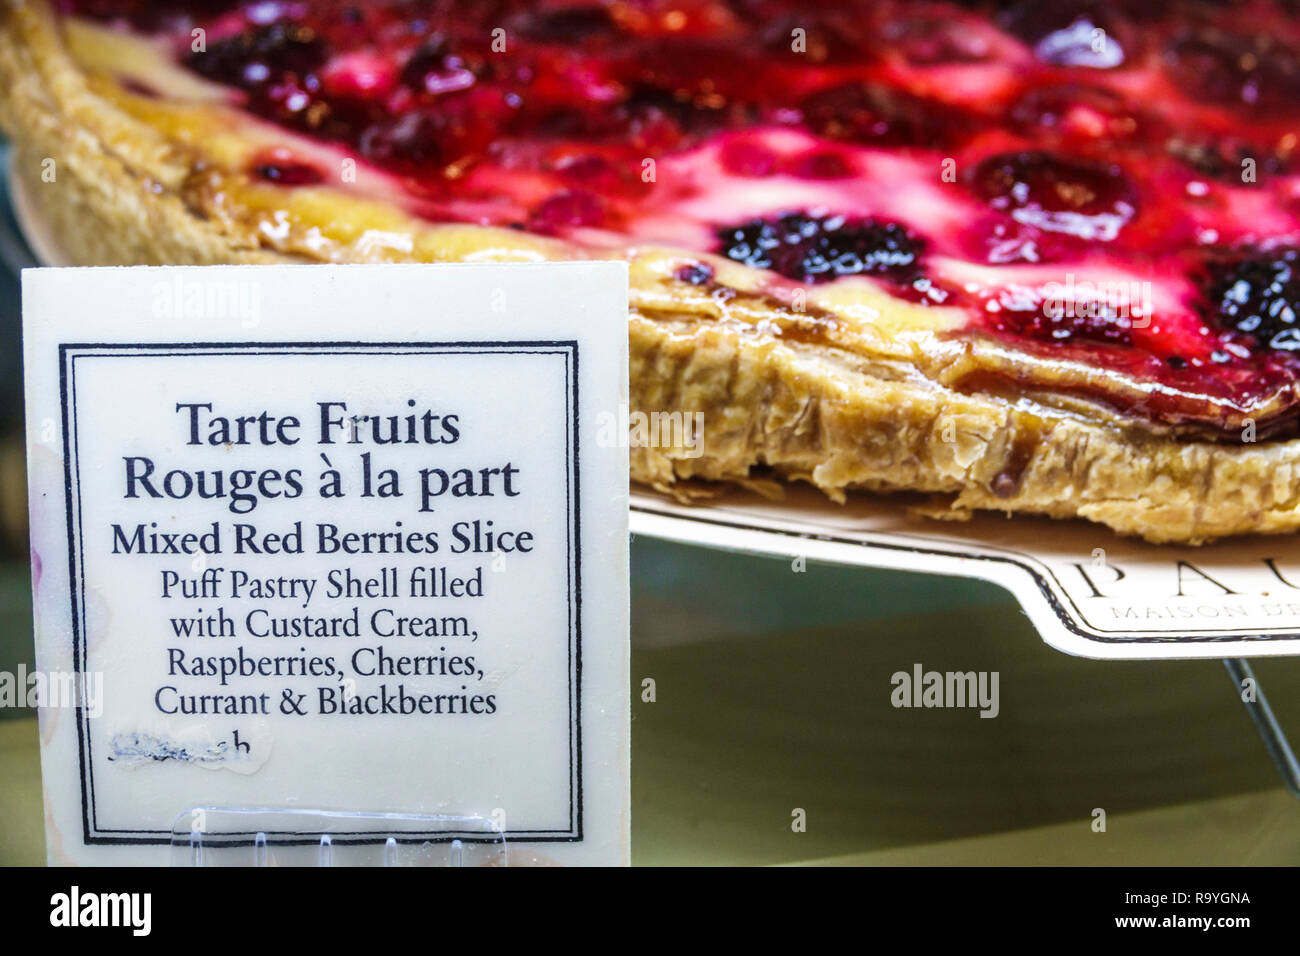 Fort Ft. Lauderdale Florida Sunrise Sawgrass Mills Mall Paul Maison de Qualite Bakery restaurant inside display sale mixed redberry slice dessert - Stock Image